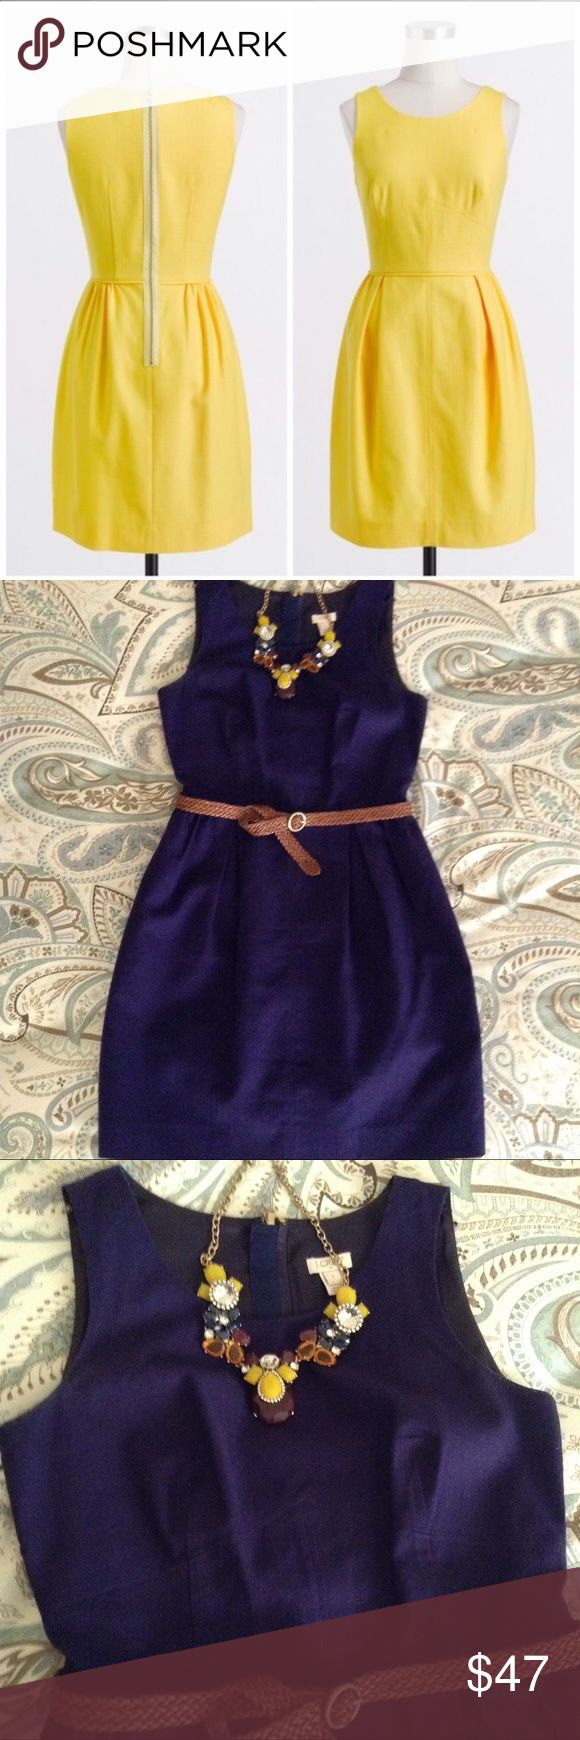 J. Crew Imperial Purple Dress A flattering fit and flare dress in a summery textured cotton that's a vibrant, deep violet. Piping defines the waist while seams give you  shape under the bust and at the back of the dress. Pleats give the skirt a little fullness. Exposed zipper. Bra strap keeps. Size 0. EUC with no signs of wear. Make an offer! J. Crew Dresses